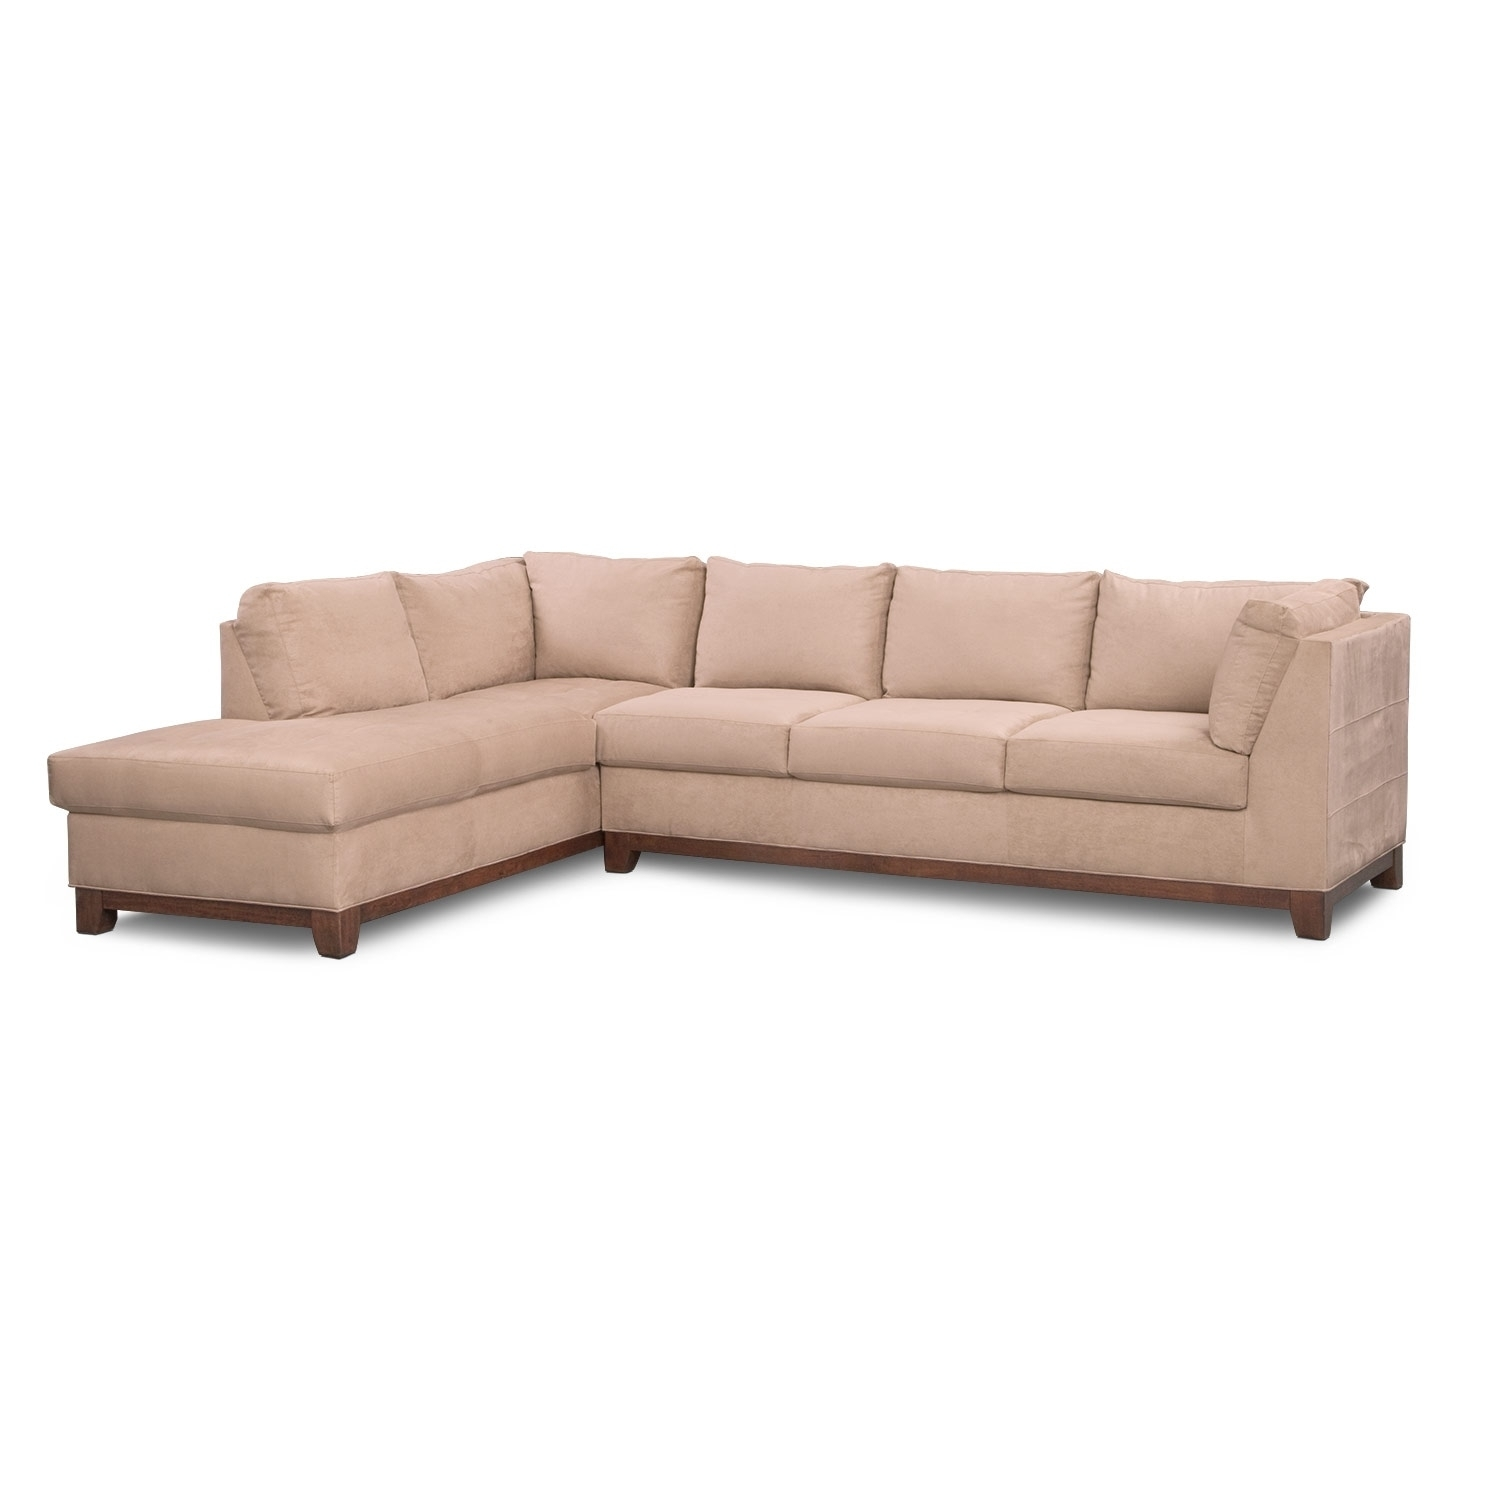 Soho 2 Piece Sectional With Left Facing Chaise – Cobblestone | Value Inside Arrowmask 2 Piece Sectionals With Sleeper & Right Facing Chaise (Image 23 of 25)